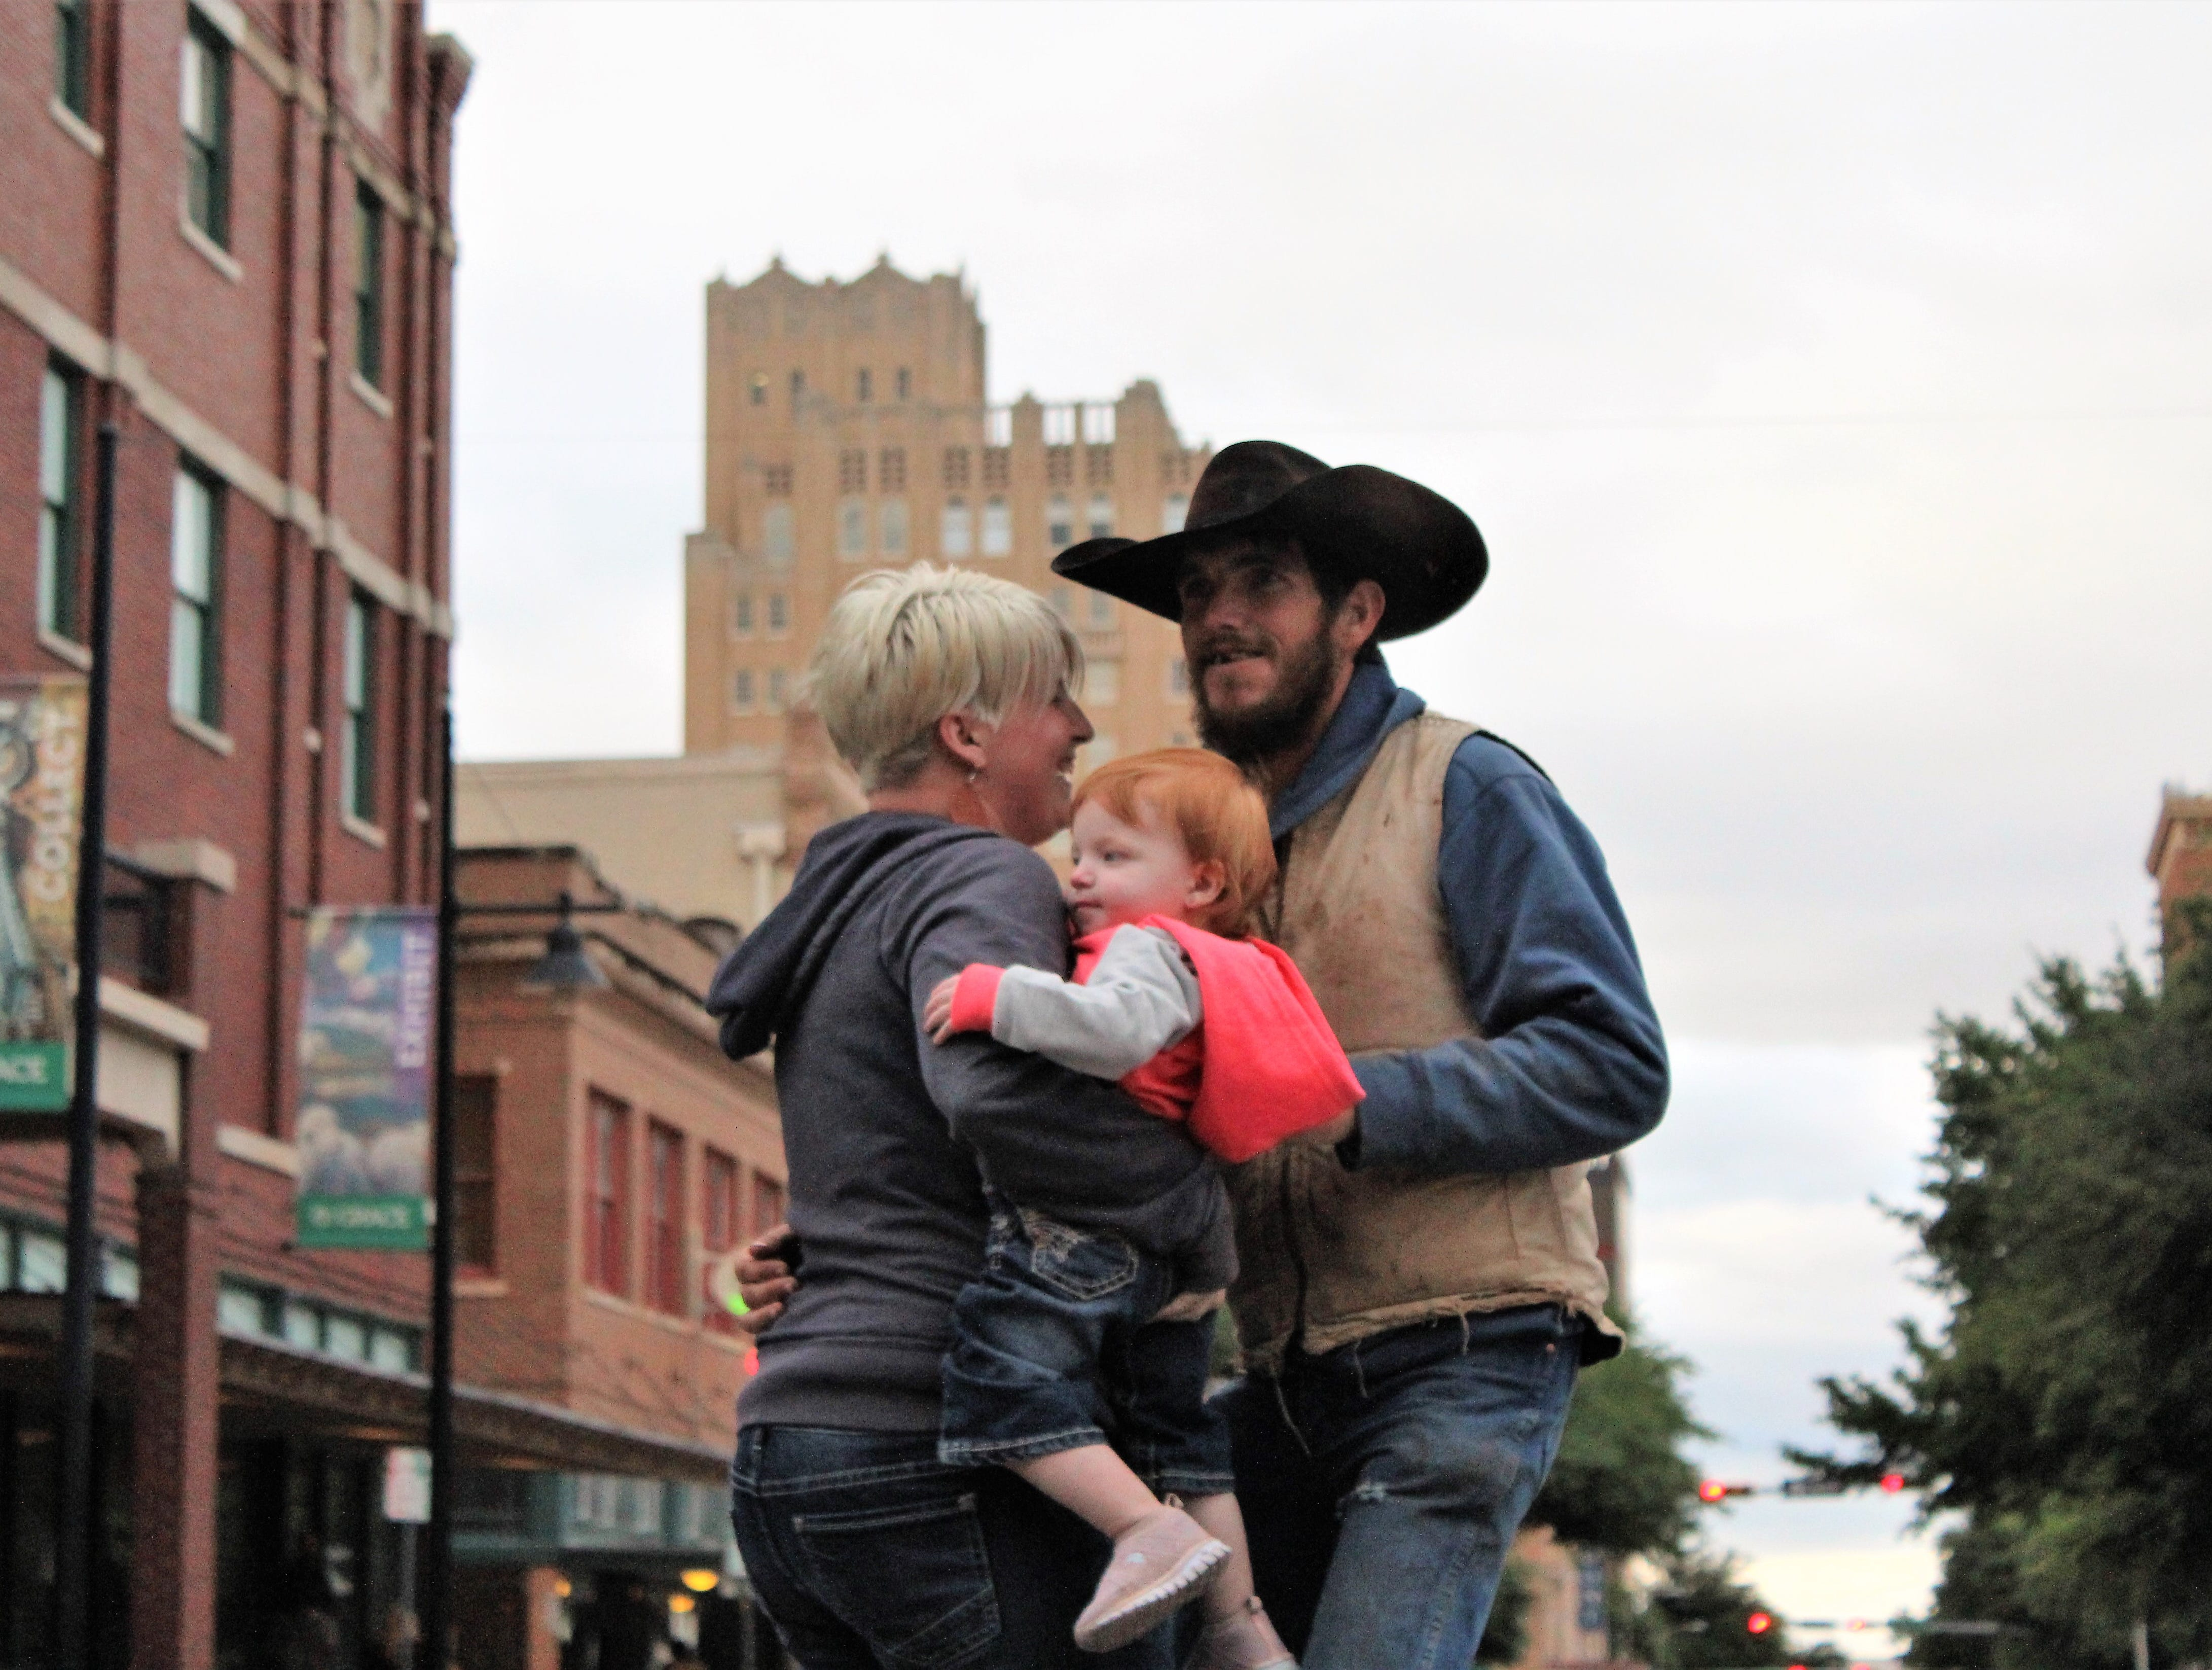 Chancey and Cara Lee scoot their boots while cradling Laramie, 15 months, at the street dance on the star in downtown Abilene on a brisk and gray Thursday evening. May 9, 2019